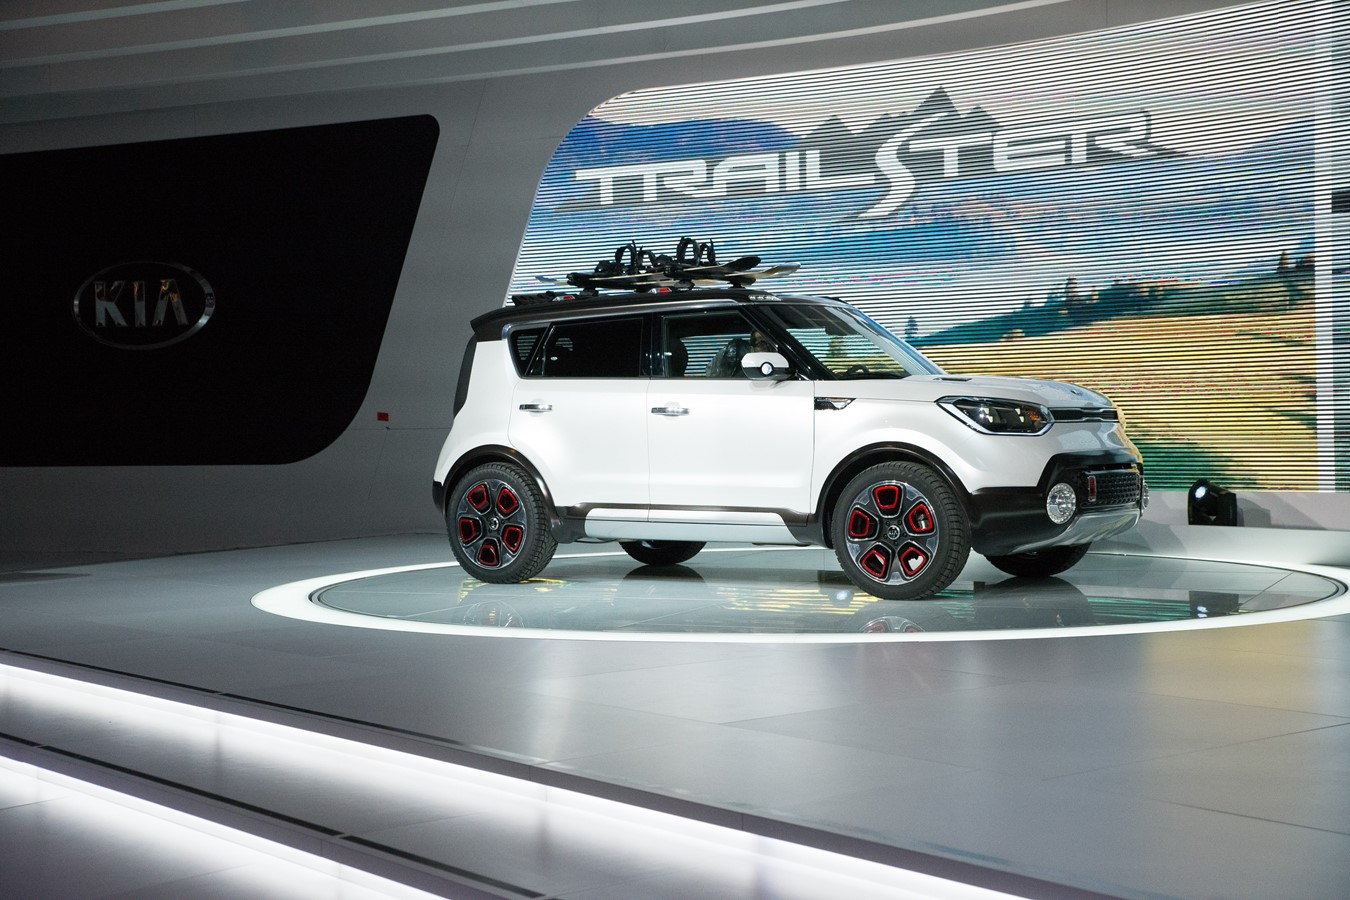 2015 Chicago Auto Show Press Conference